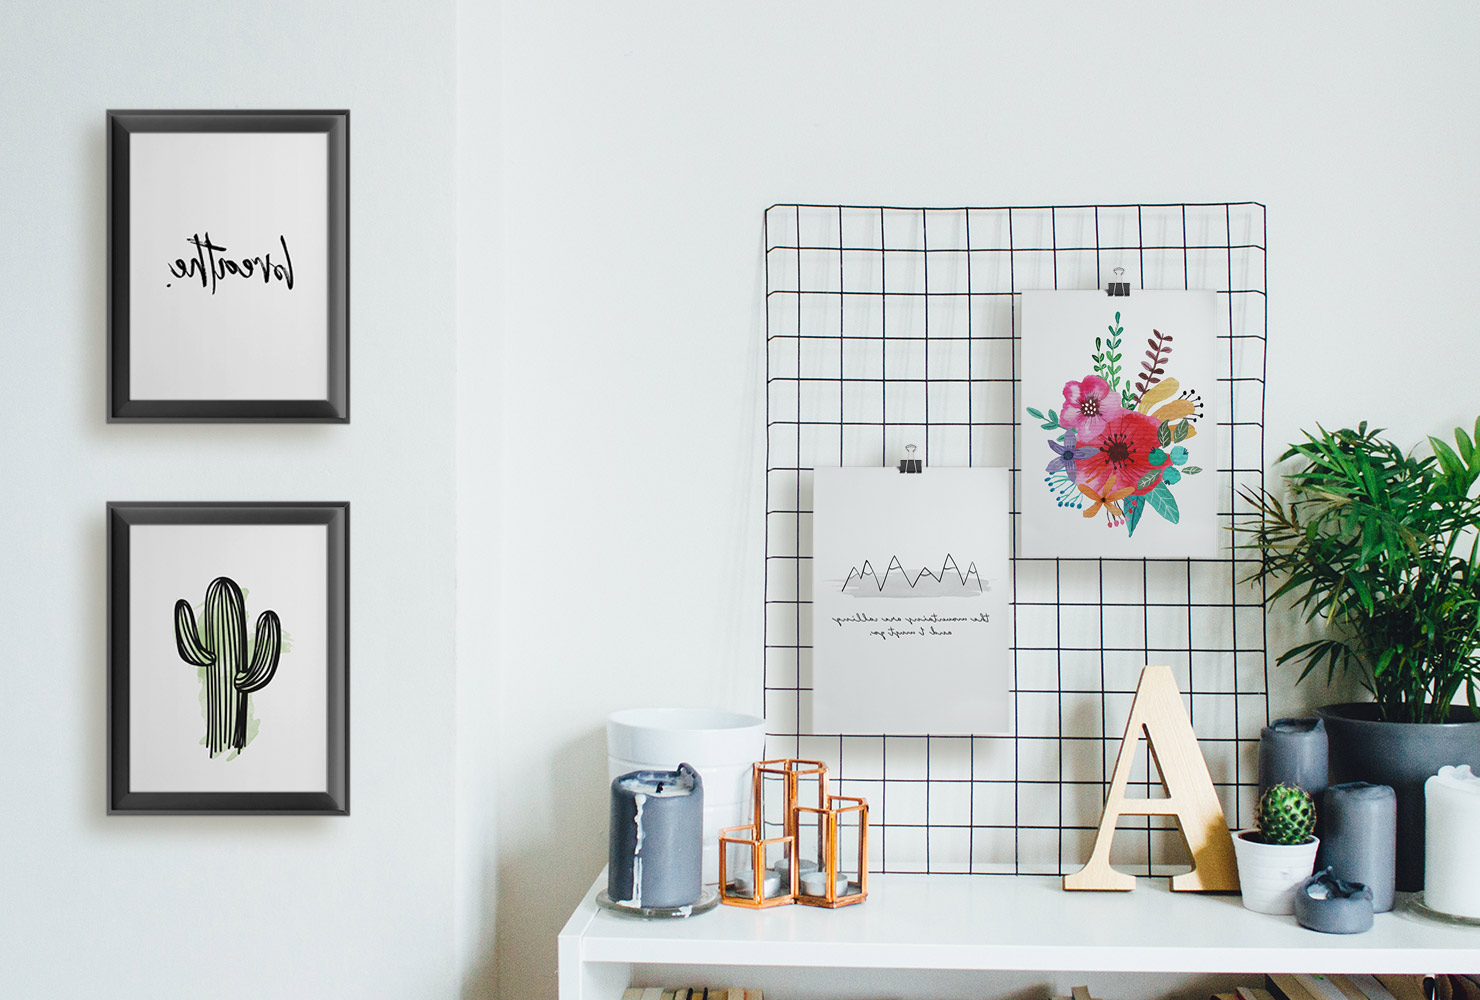 25 Unique Diy Wall Art Ideas (With Printables) (Gallery 15 of 20)